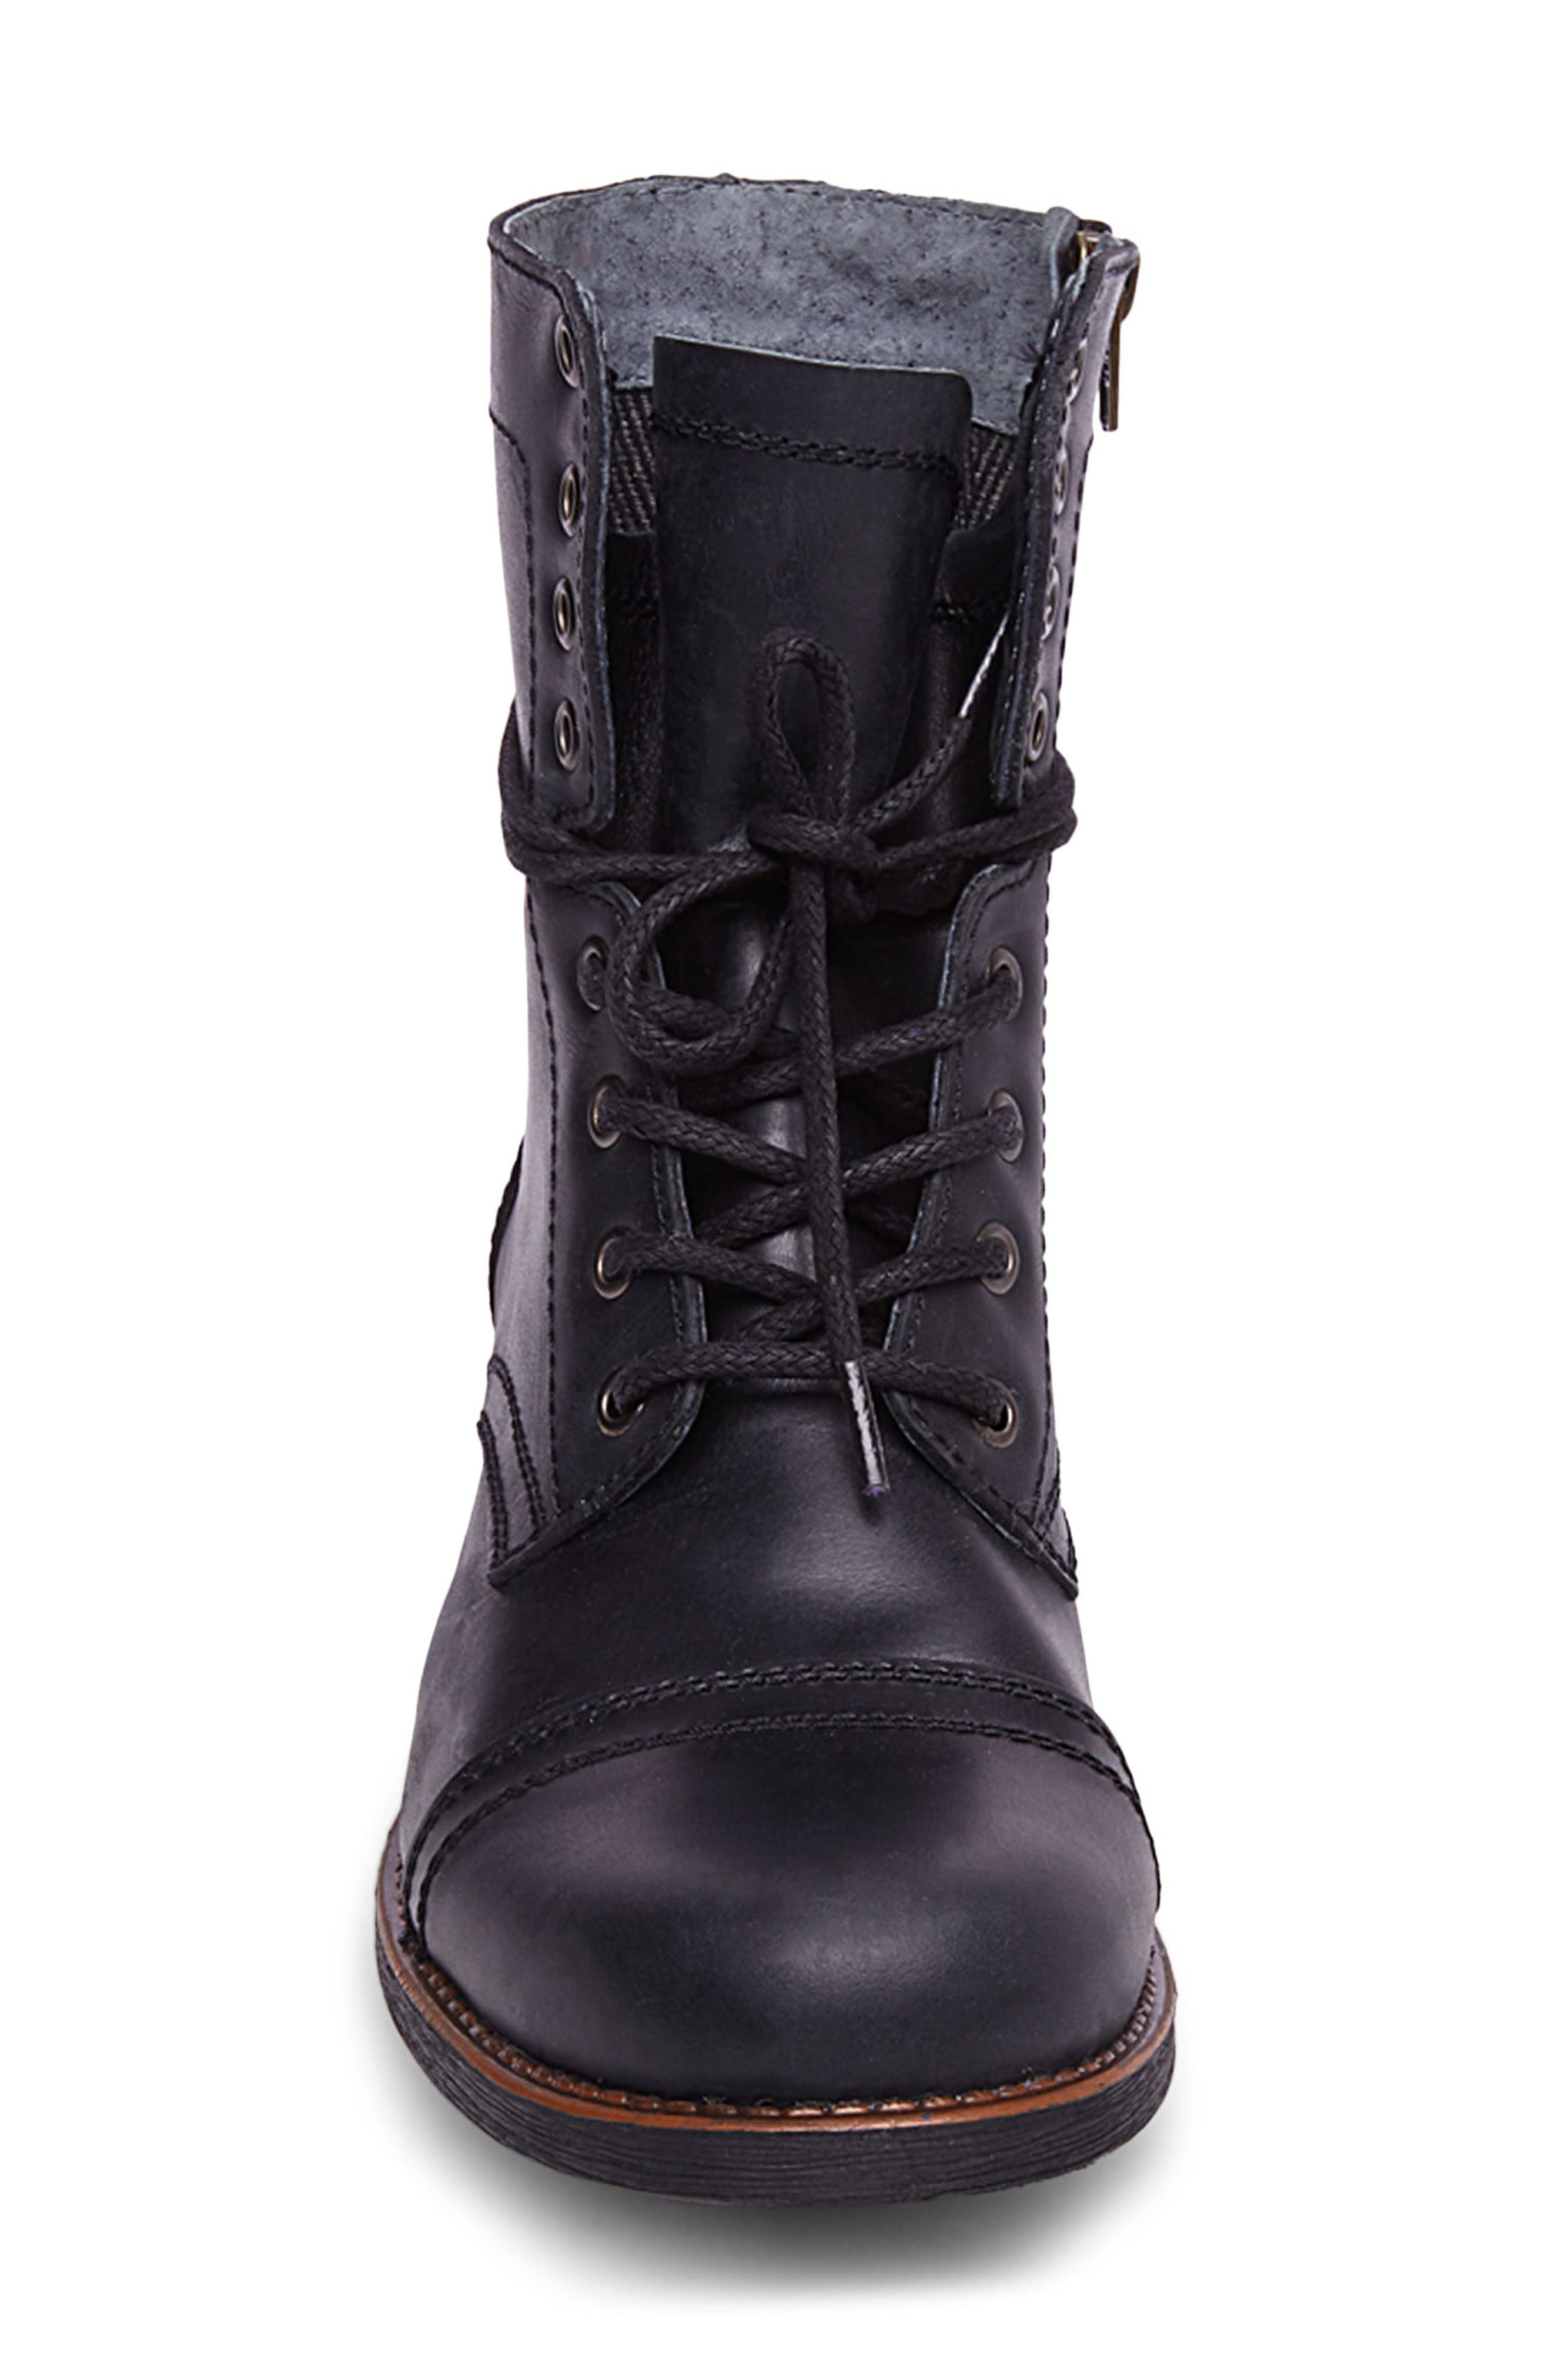 Troopah-C Cap Toe Boot,                             Alternate thumbnail 4, color,                             BLACK LEATHER